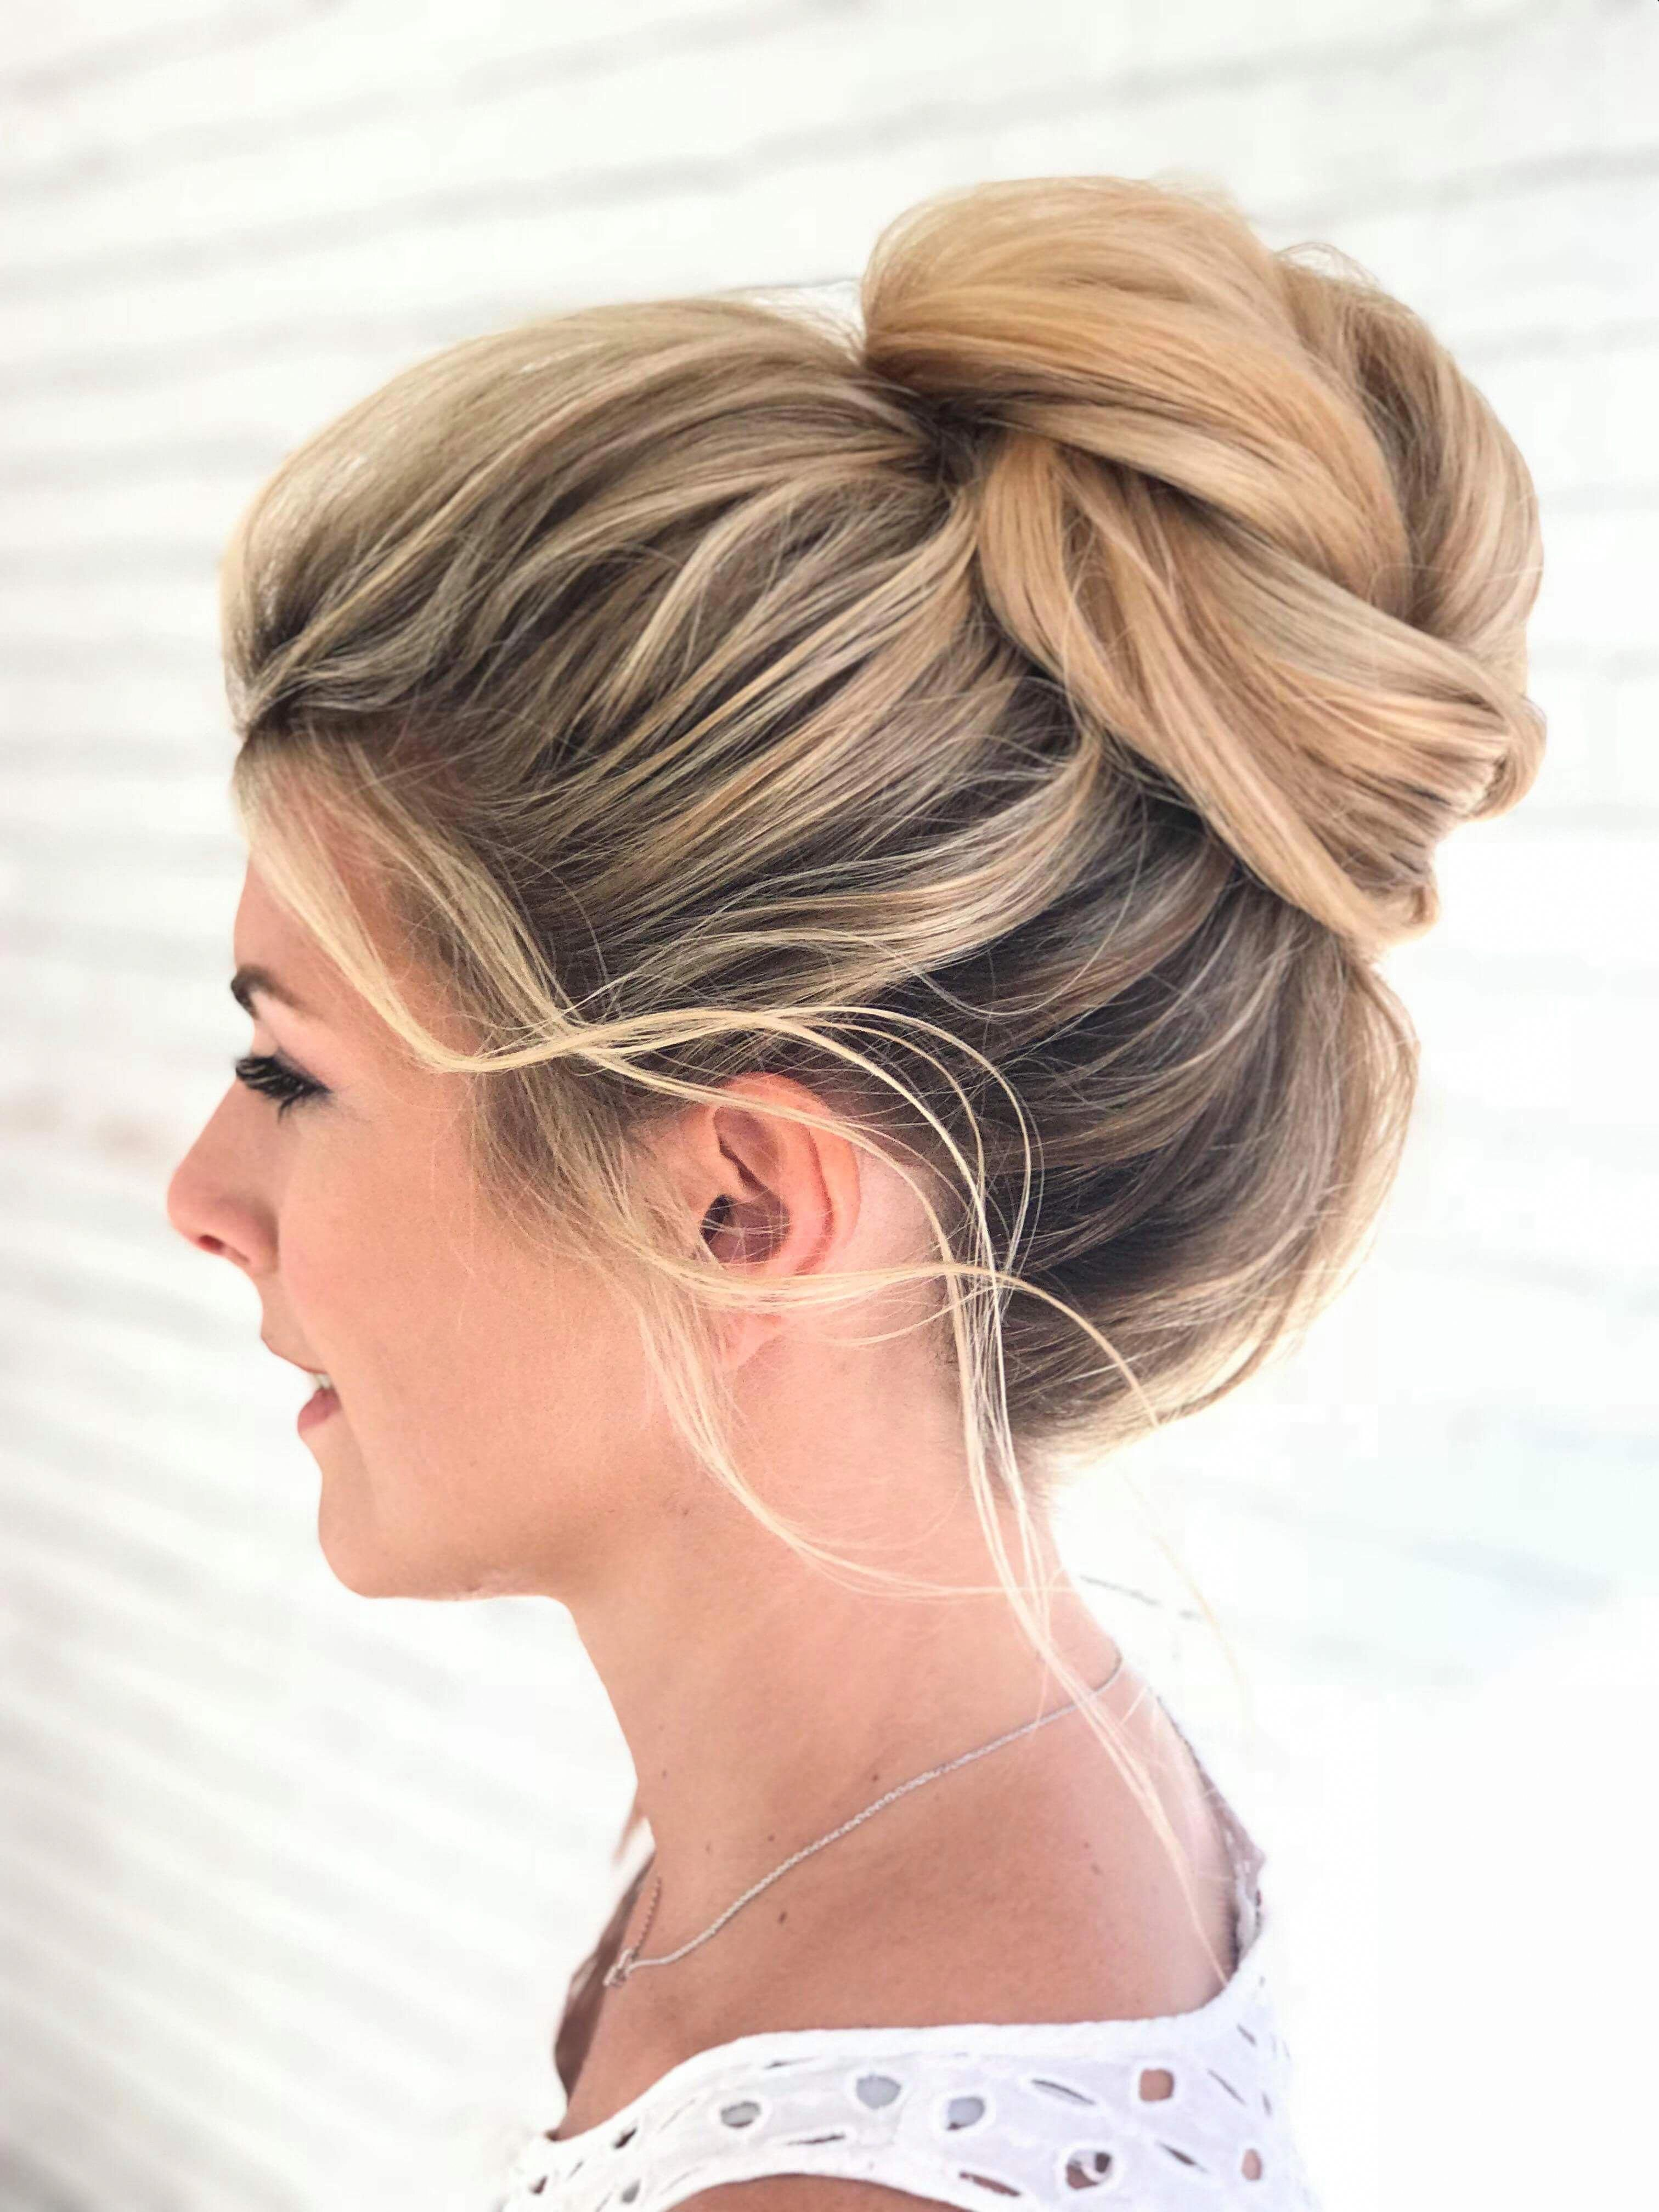 Messy High Bun On Blonde Highlighted Hair Gorgeous For A Wedding Updo Ombreweddinghair Bridesmaid Hair Side High Bun Hairstyles Bridesmaid Hair Messy